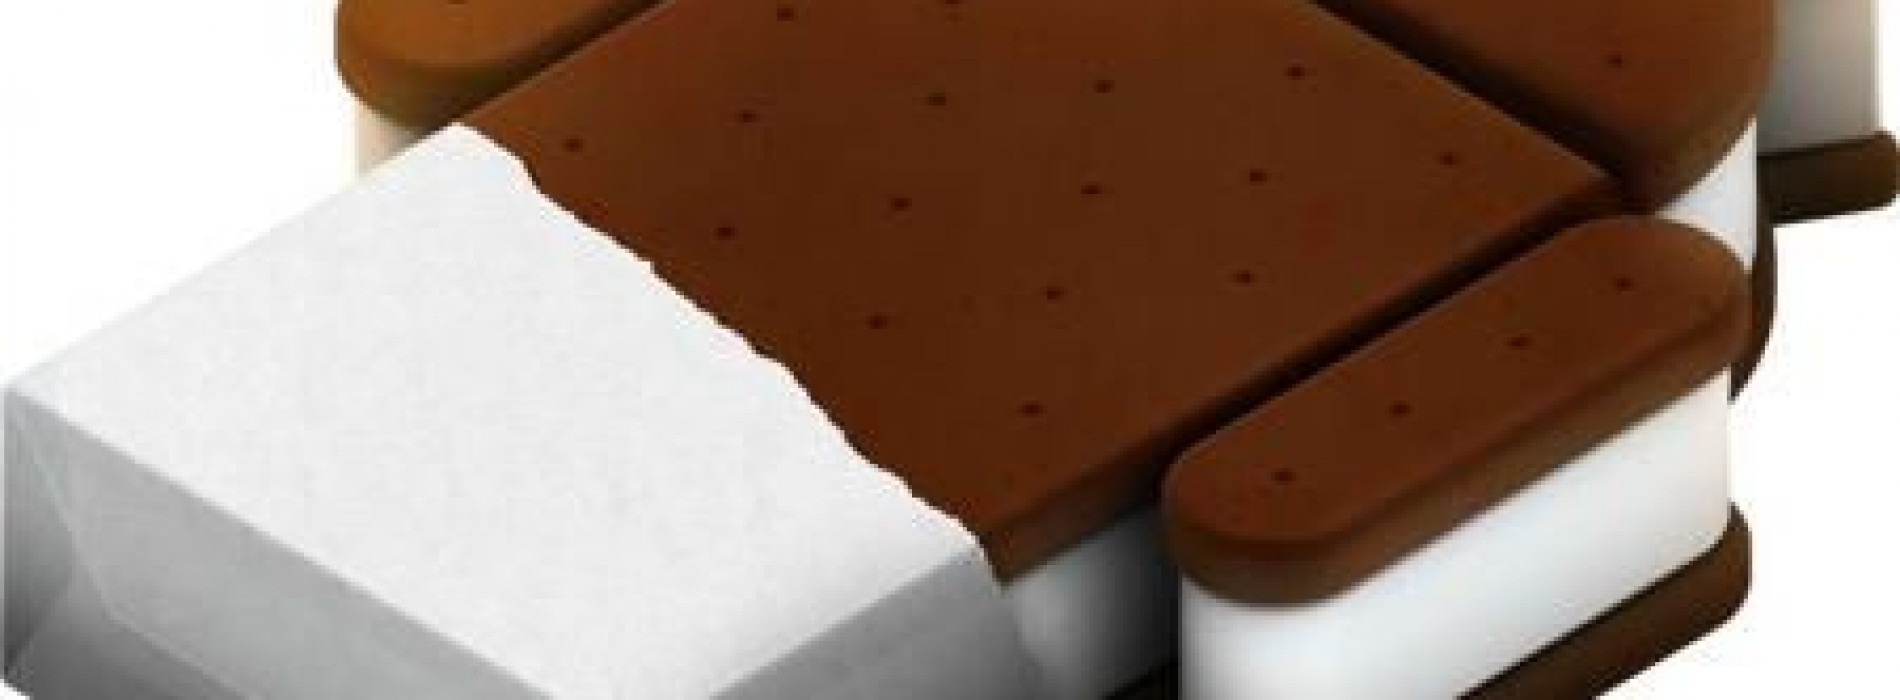 HTC currently reviewing Ice Cream Sandwich, good news soon?